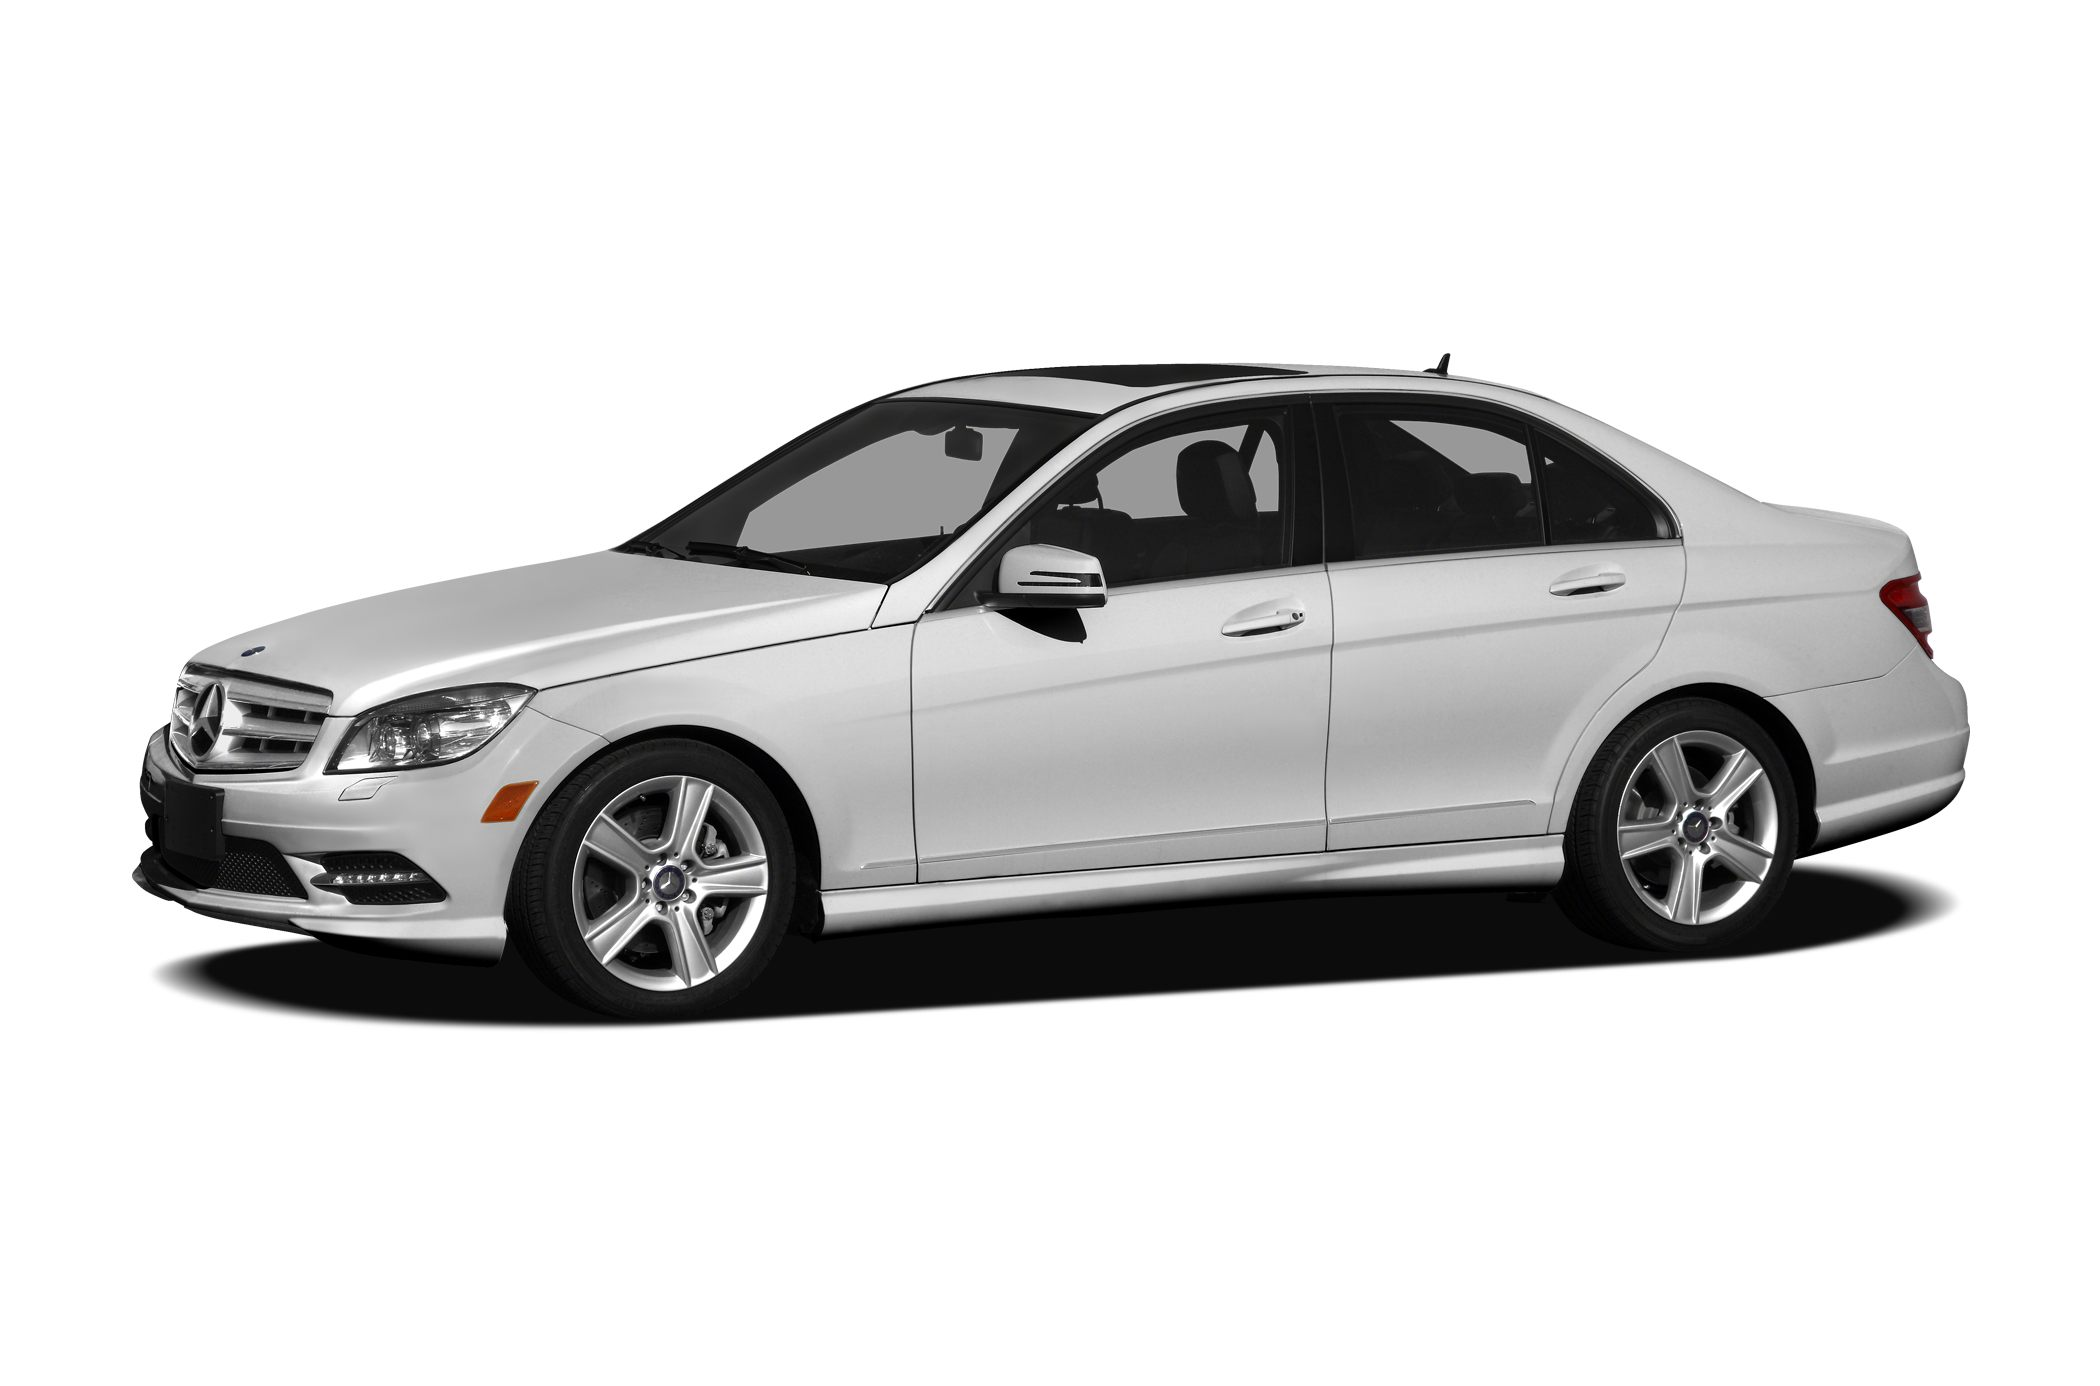 2011 MERCEDES C-Class C300 This Sedan is for Mercedes-Benz fanatics the world over thirsting for a